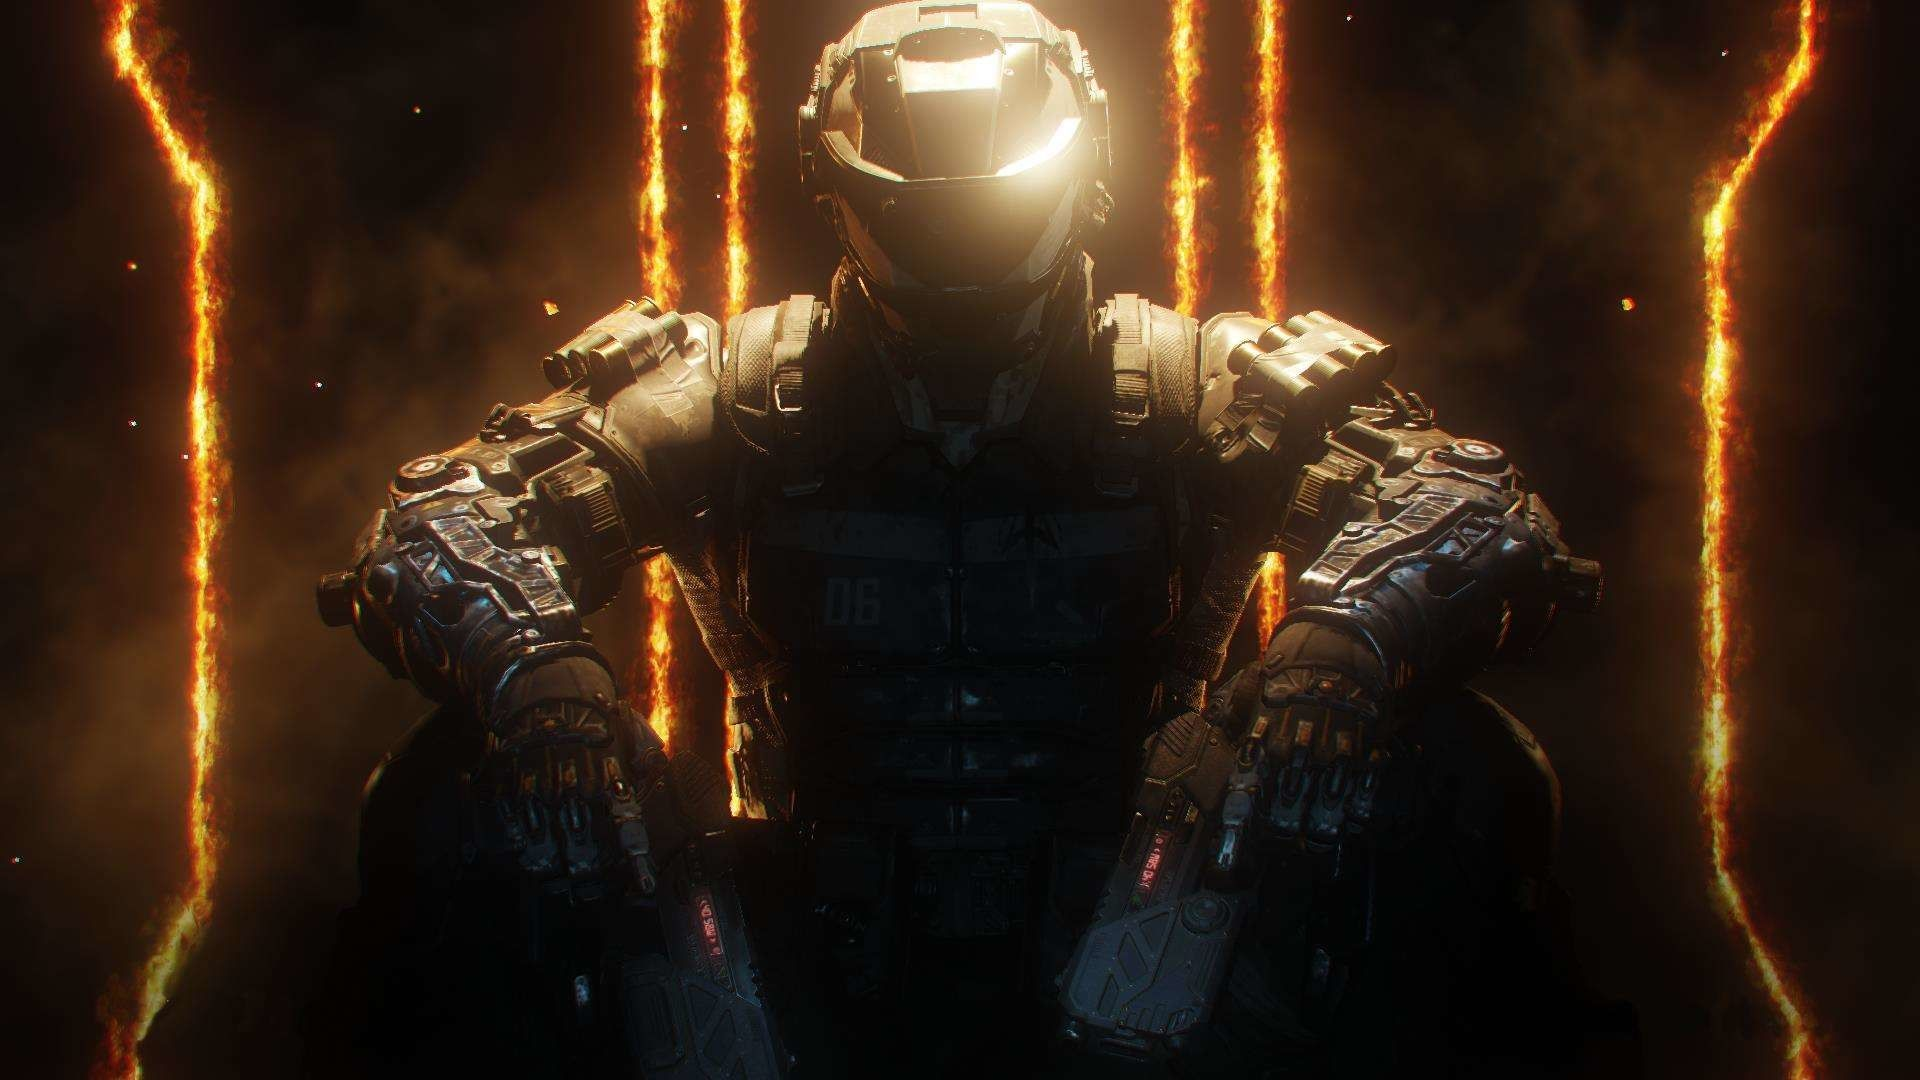 1920x1080 Badass 4k Wallpaper Call Of Duty Black Ops 3 Call Of